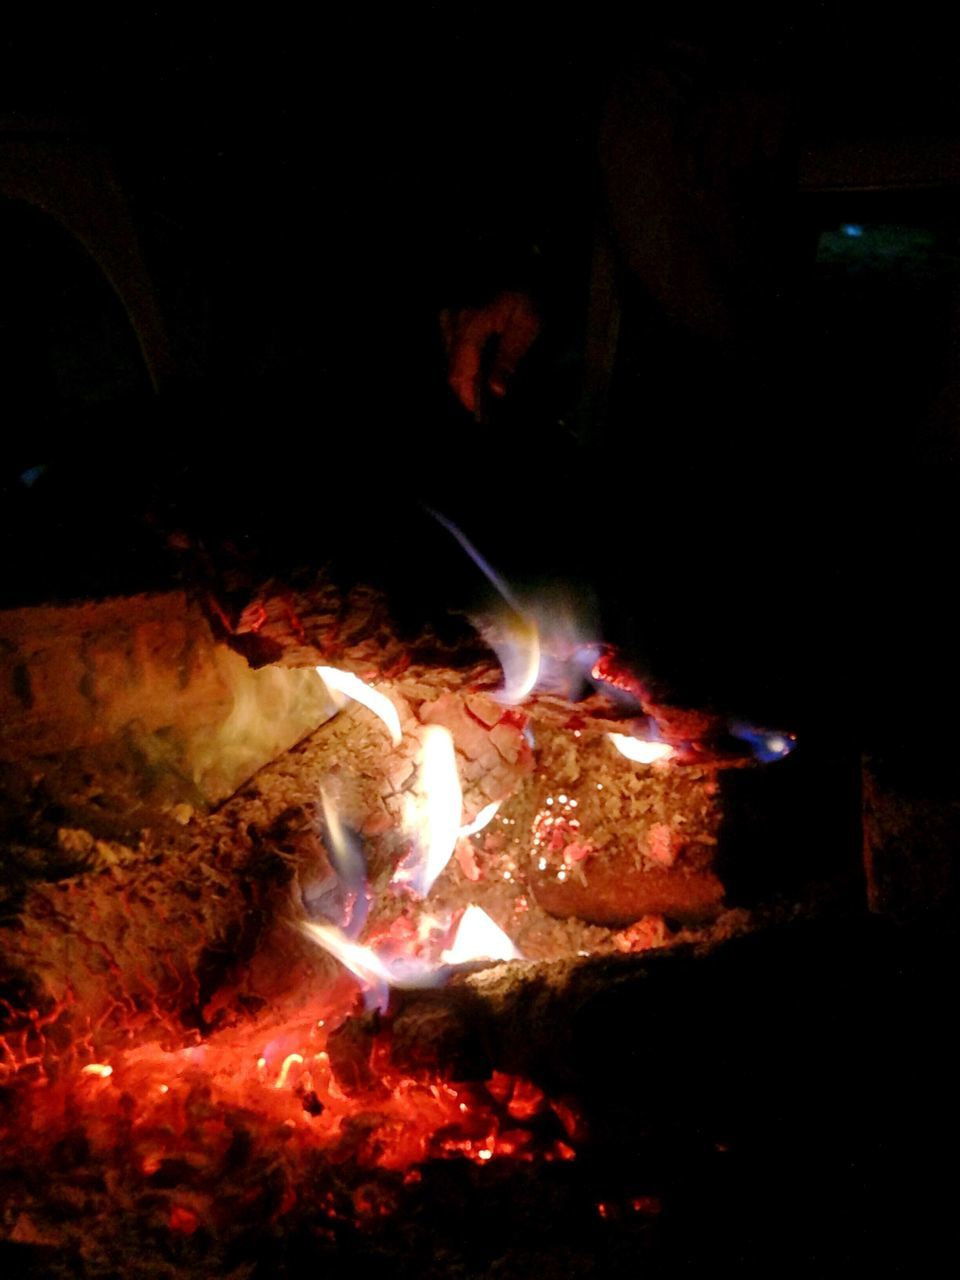 flame, burning, heat - temperature, night, glowing, no people, bonfire, indoors, close-up, fire pit, molten, diya - oil lamp